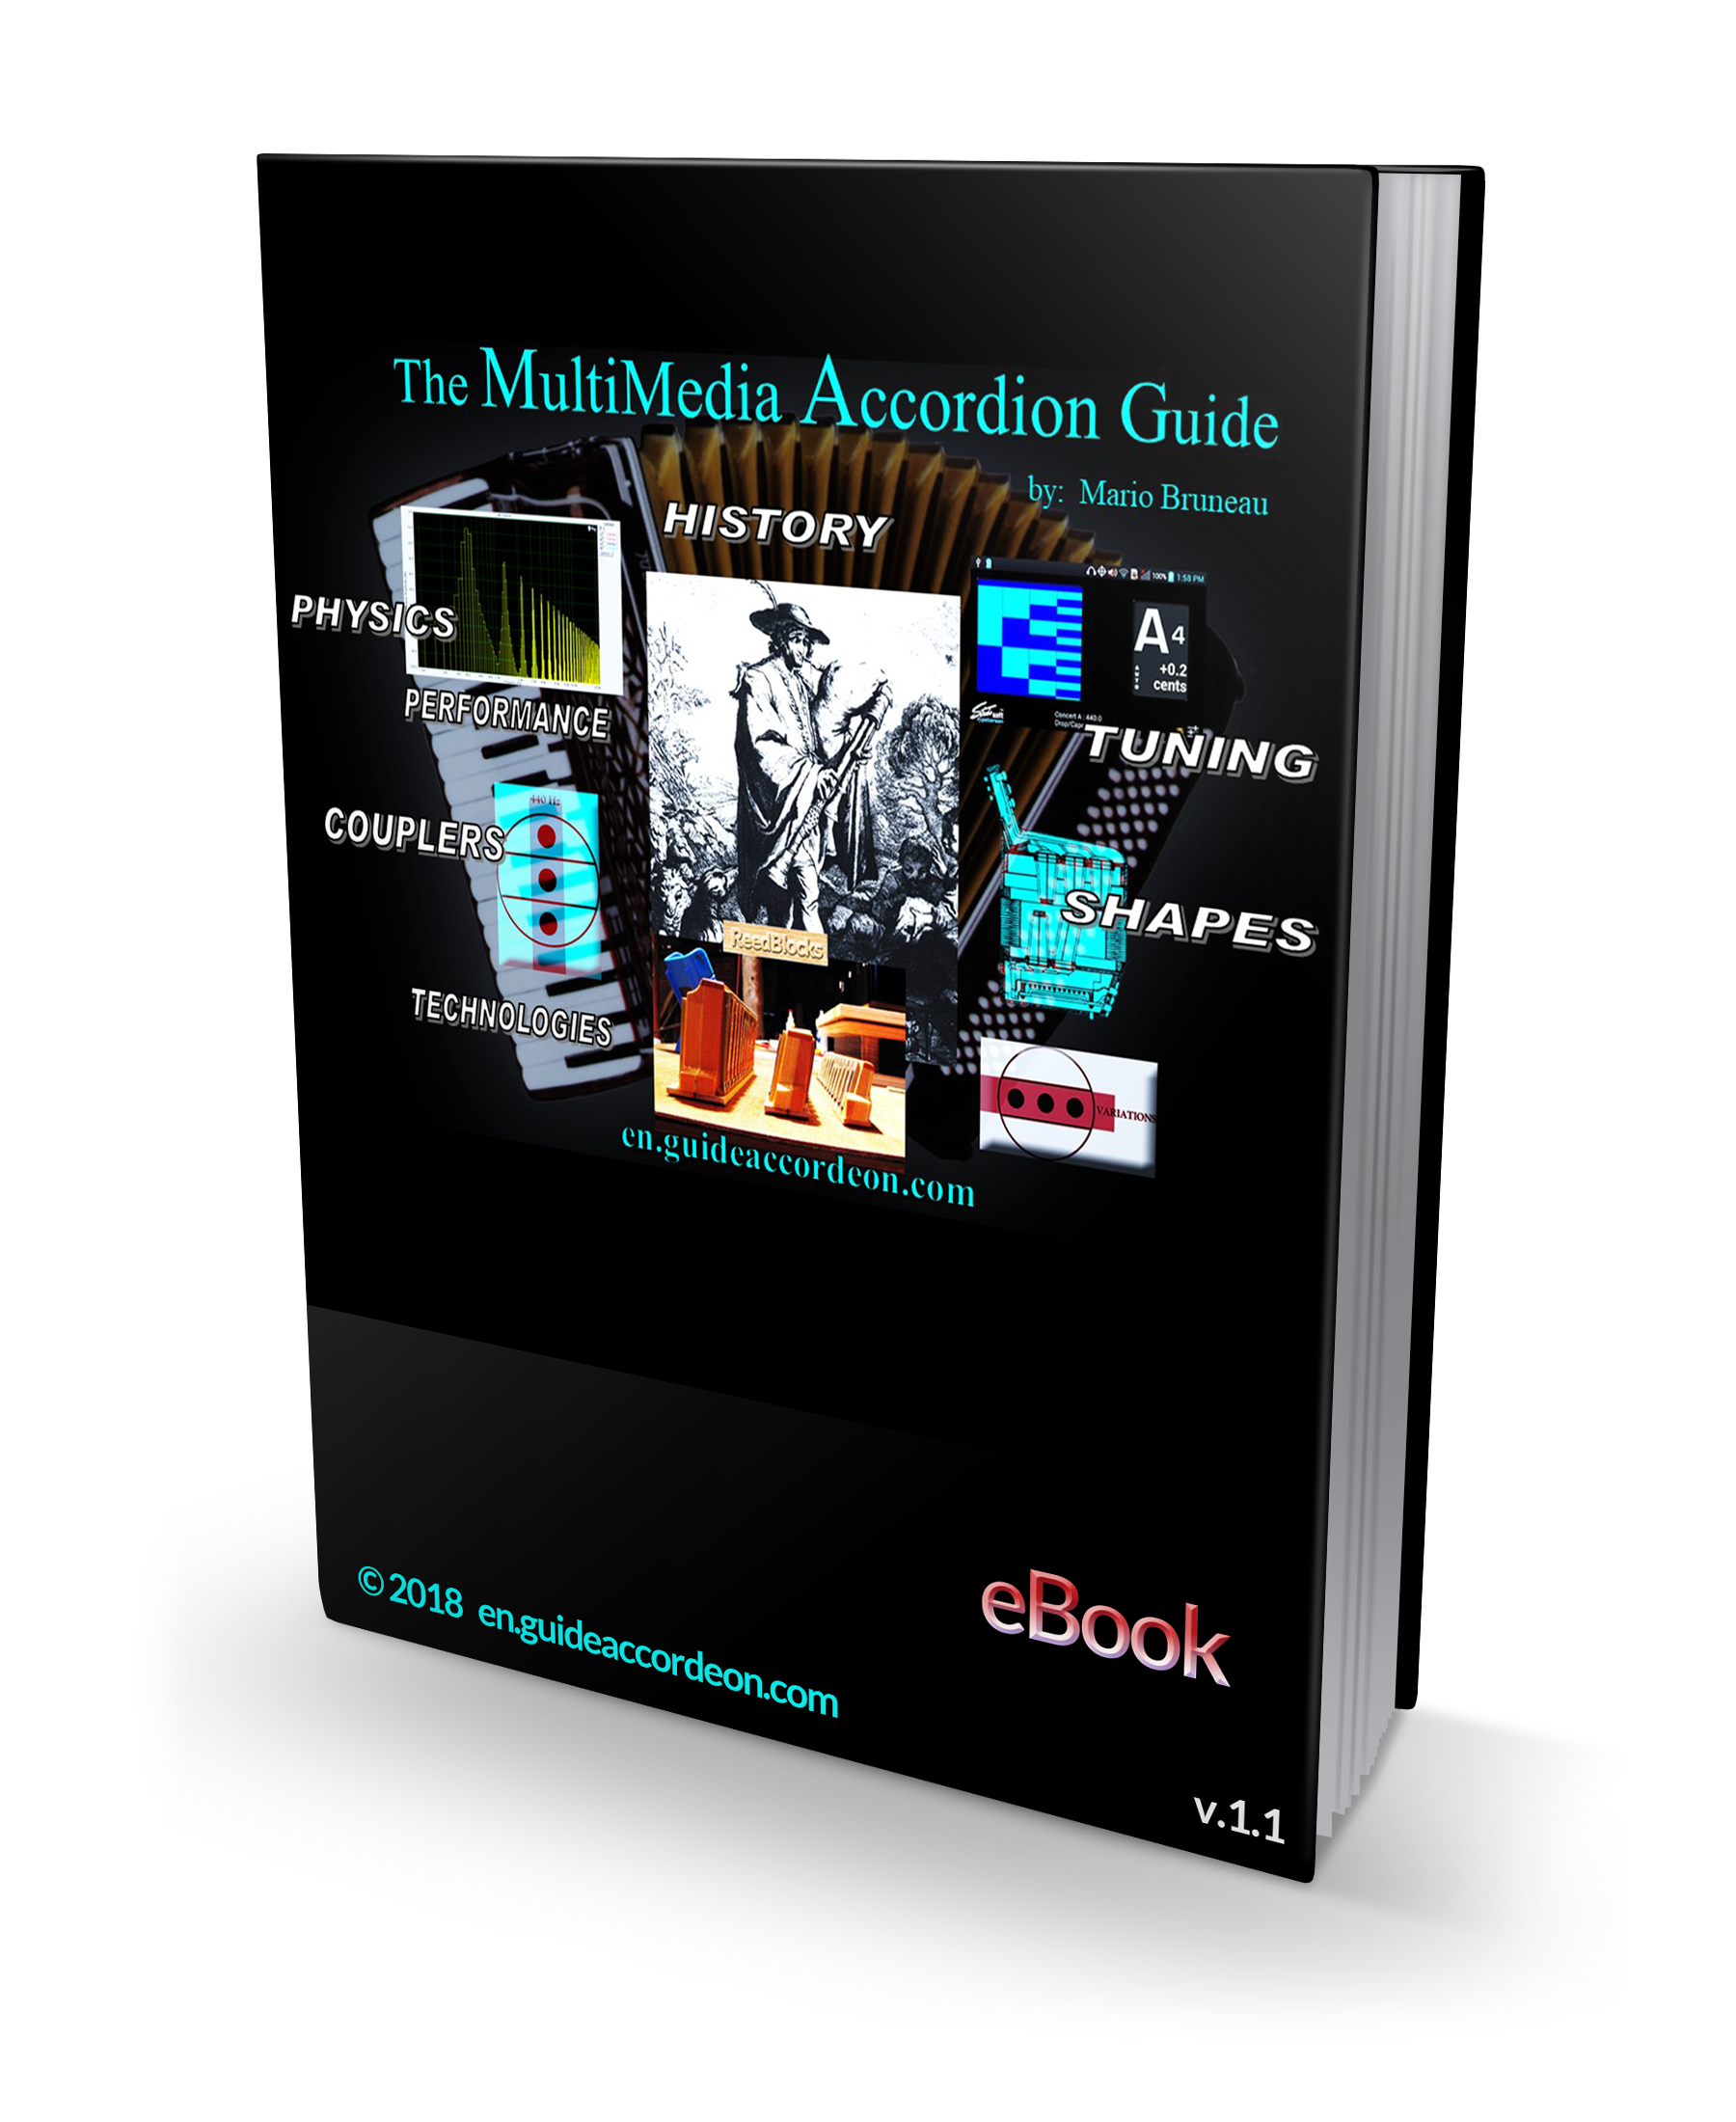 eBook of the accordion